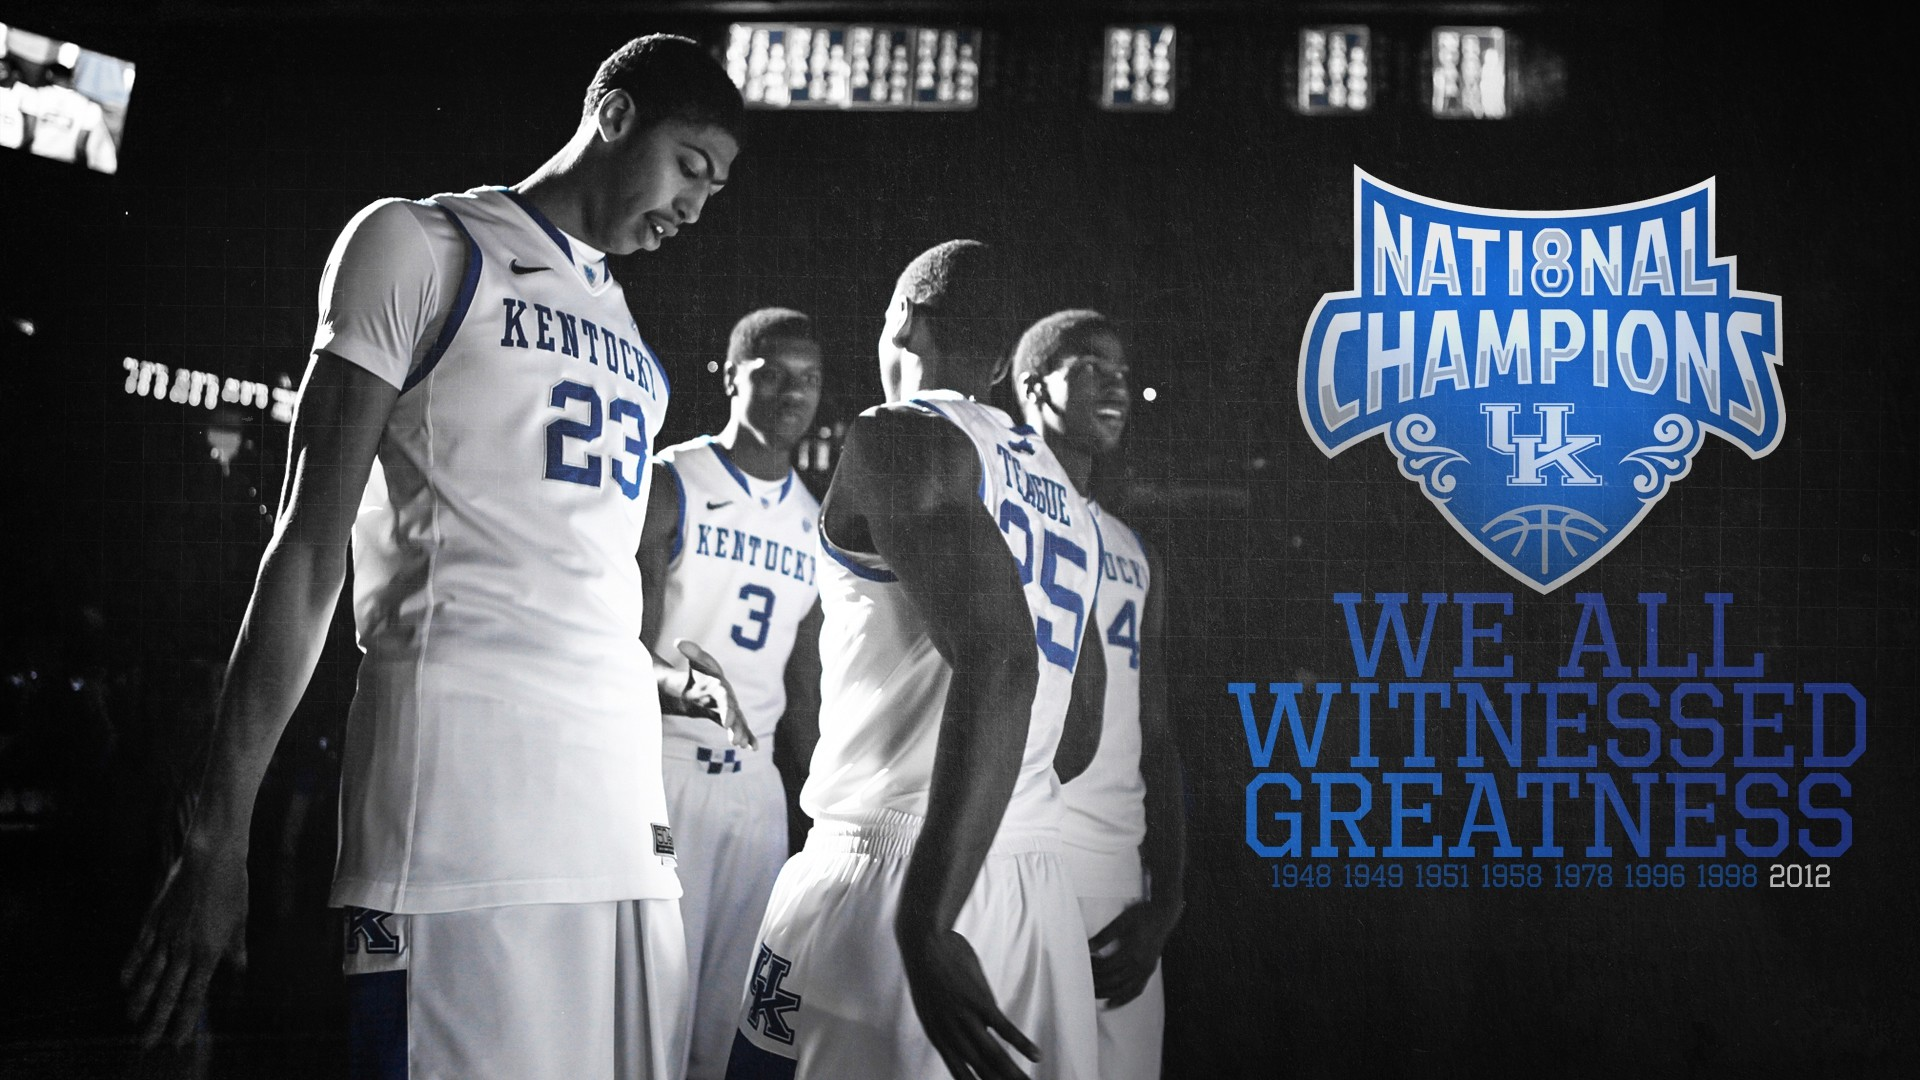 1920x1080 Kentucky Wildcats Wallpaper Download Free.